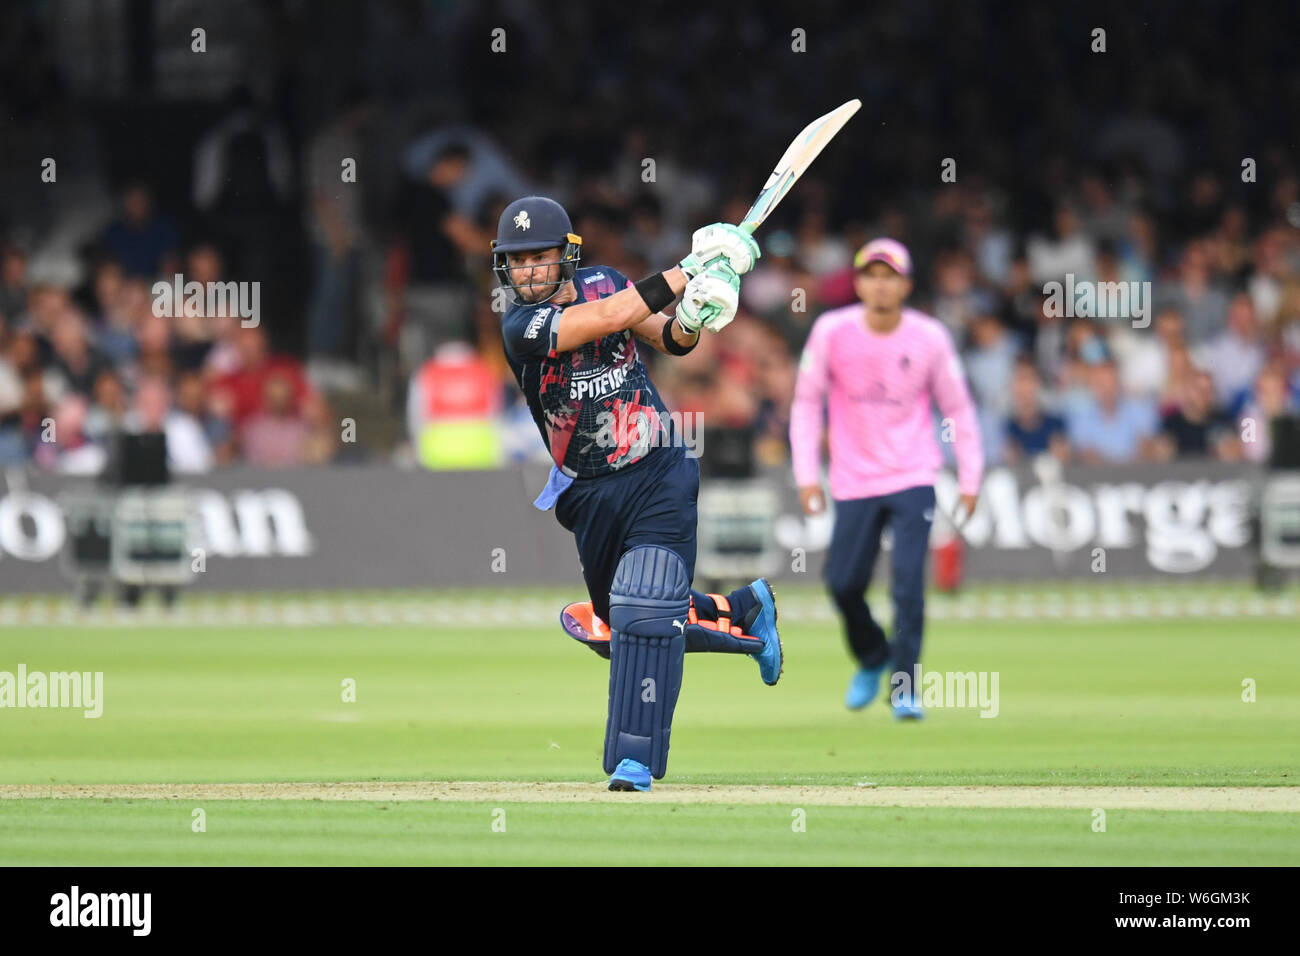 London, UK. 1st Aug, 2019. Heino Kuhn of Kent Cricket Club in action during todays match during T20 Vitality Blast Fixture between Middesex vs Kent at The Lord Cricket Ground on Thursday, August 01, 2019 in LONDON ENGLAND. Credit: Taka G Wu/Alamy Live News Stock Photo